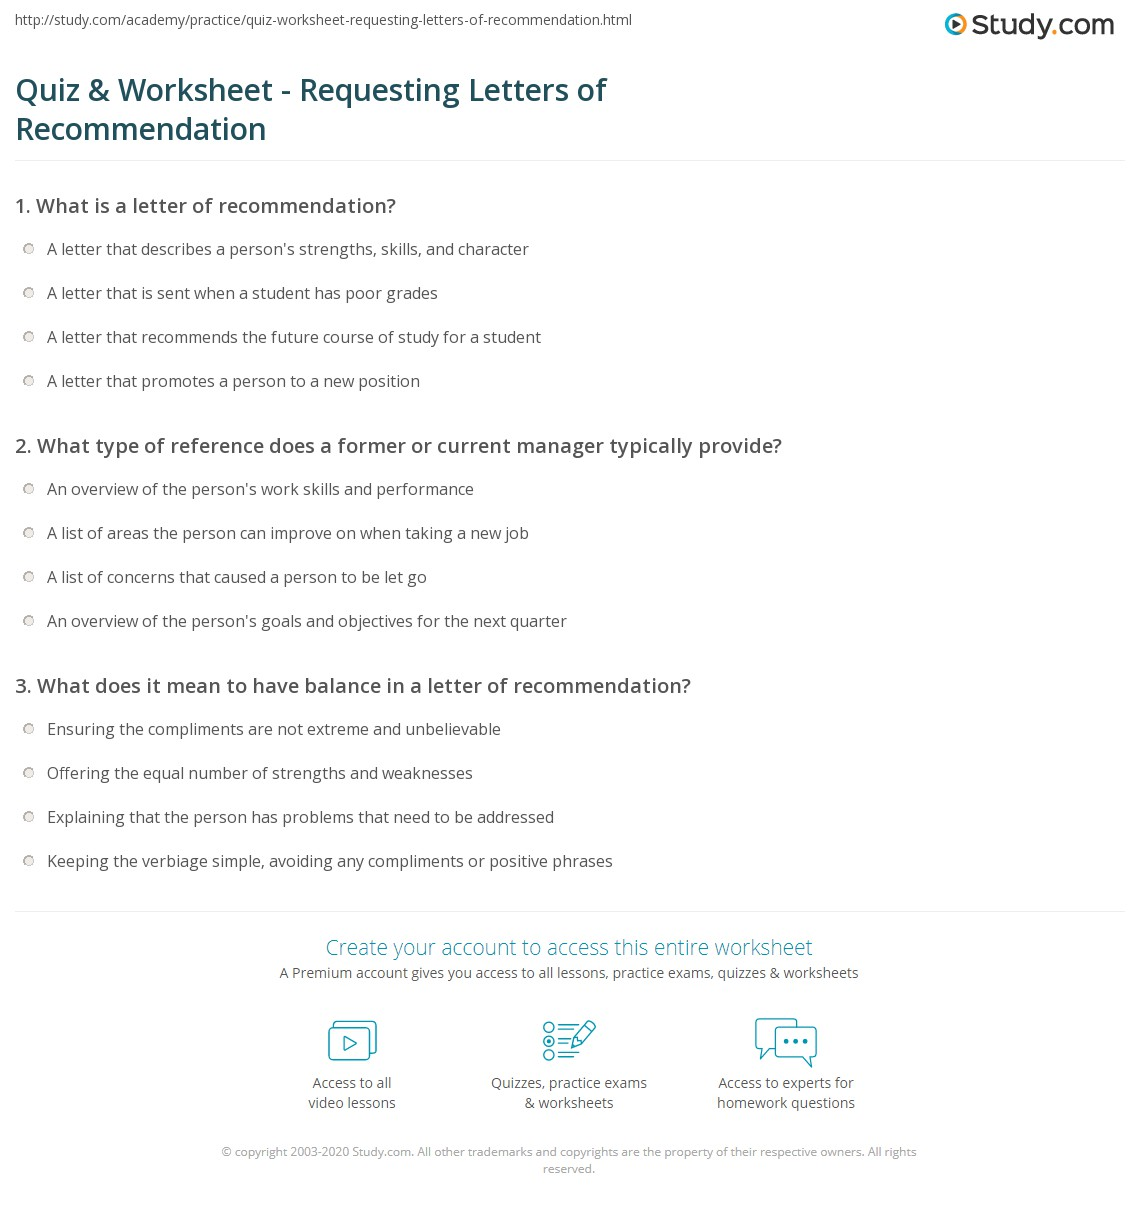 Quiz Worksheet Requesting Letters Of Recommendation Study Com